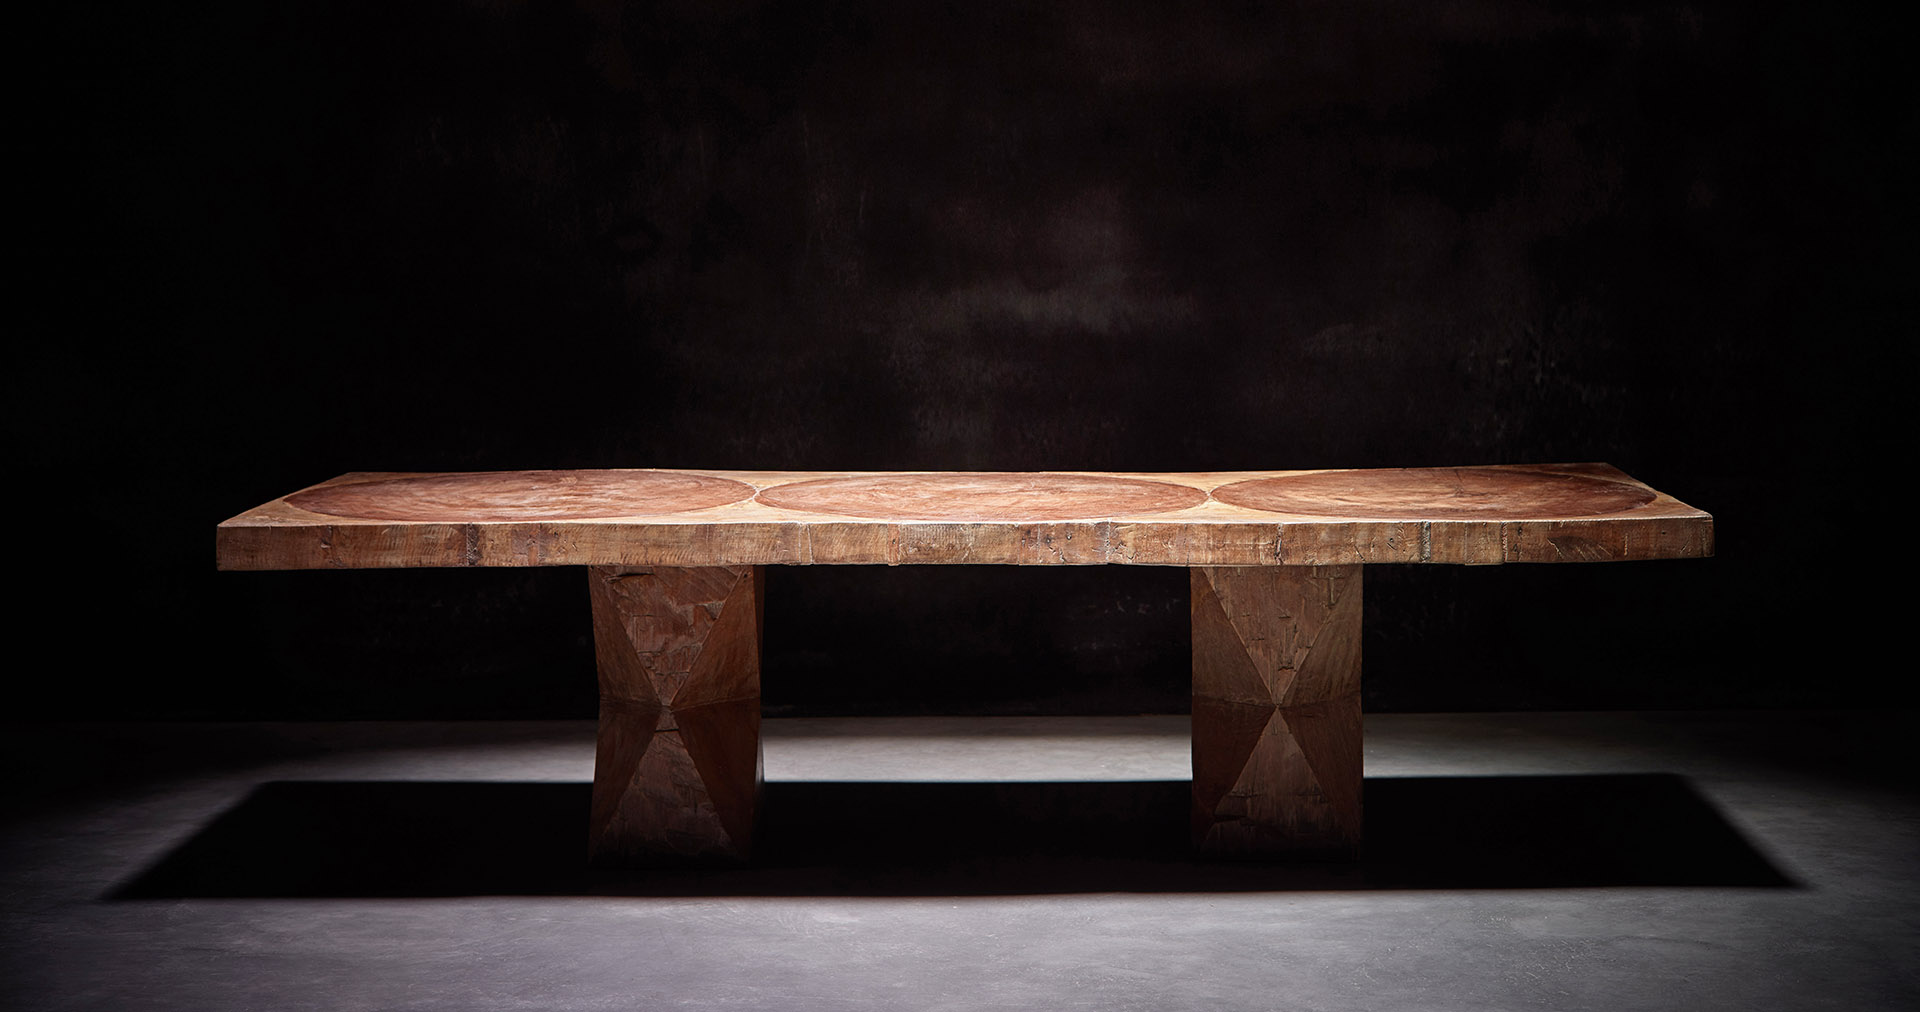 A rectangular sculpted table (1979) by Jose Zanine Caldas at Axel Vervoordt's booth| Masterpiece London Art Fair| Royal Hospital Chelsea| STIR